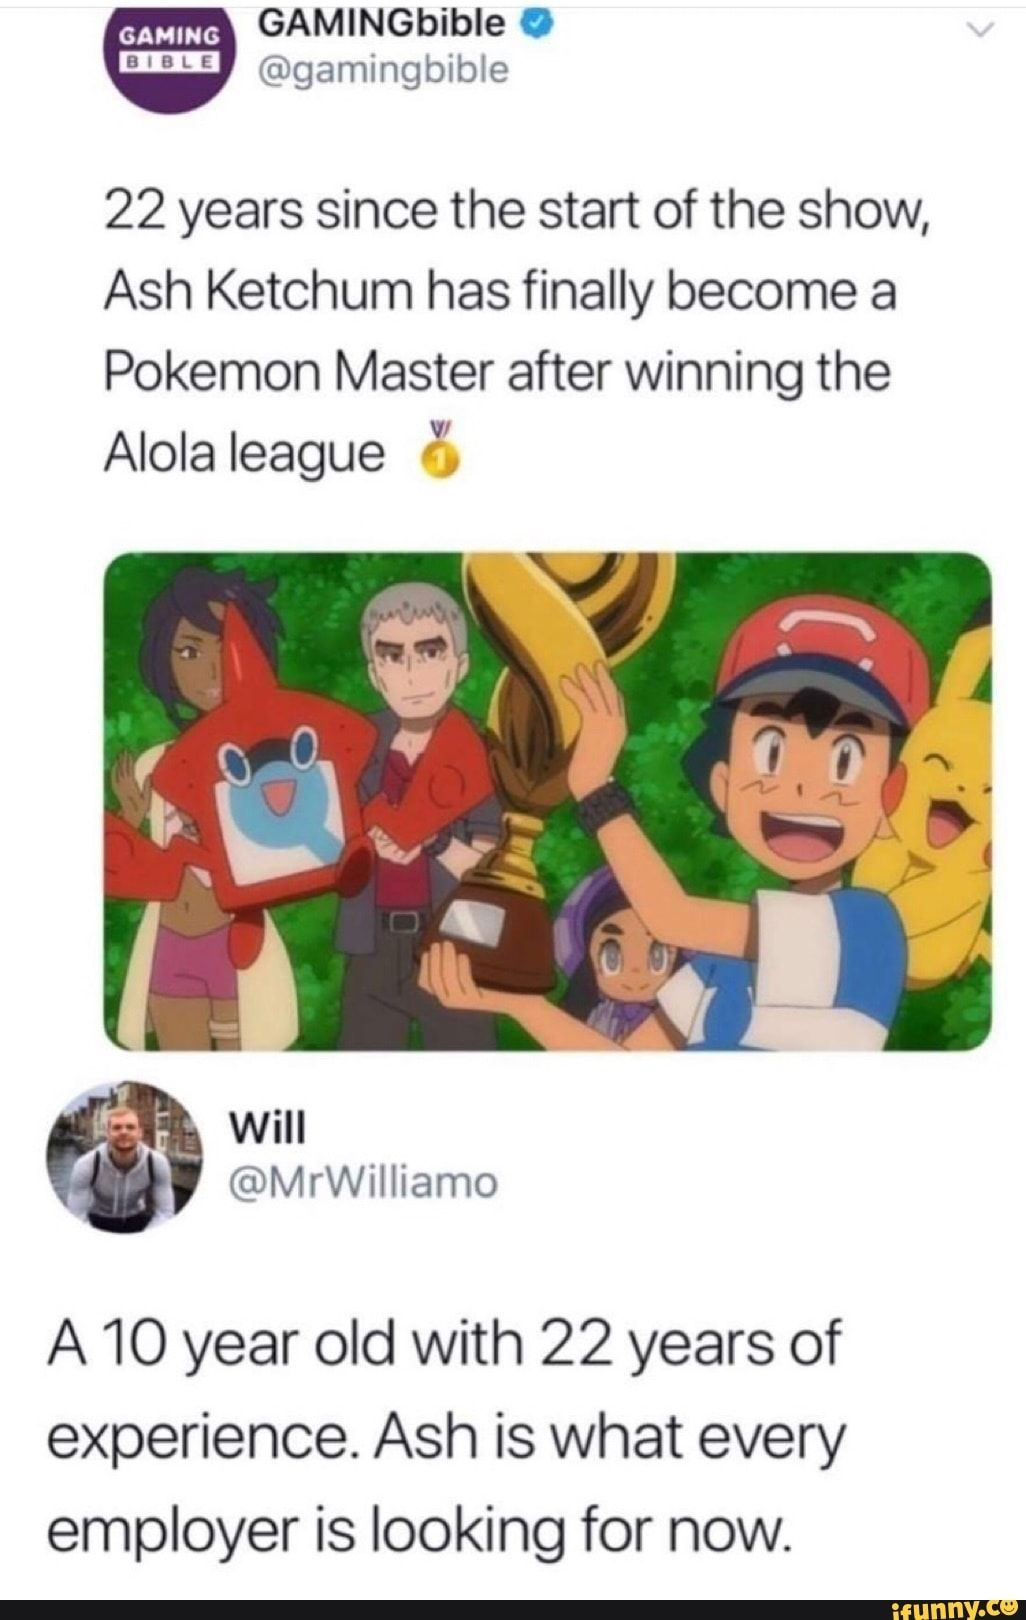 22 Years Since The Start Of The Show Ash Ketchum Has Finally Become A Pokemon Master After Winning The Alola League Tvi A 10 Year Old With 22 Years Of Experien